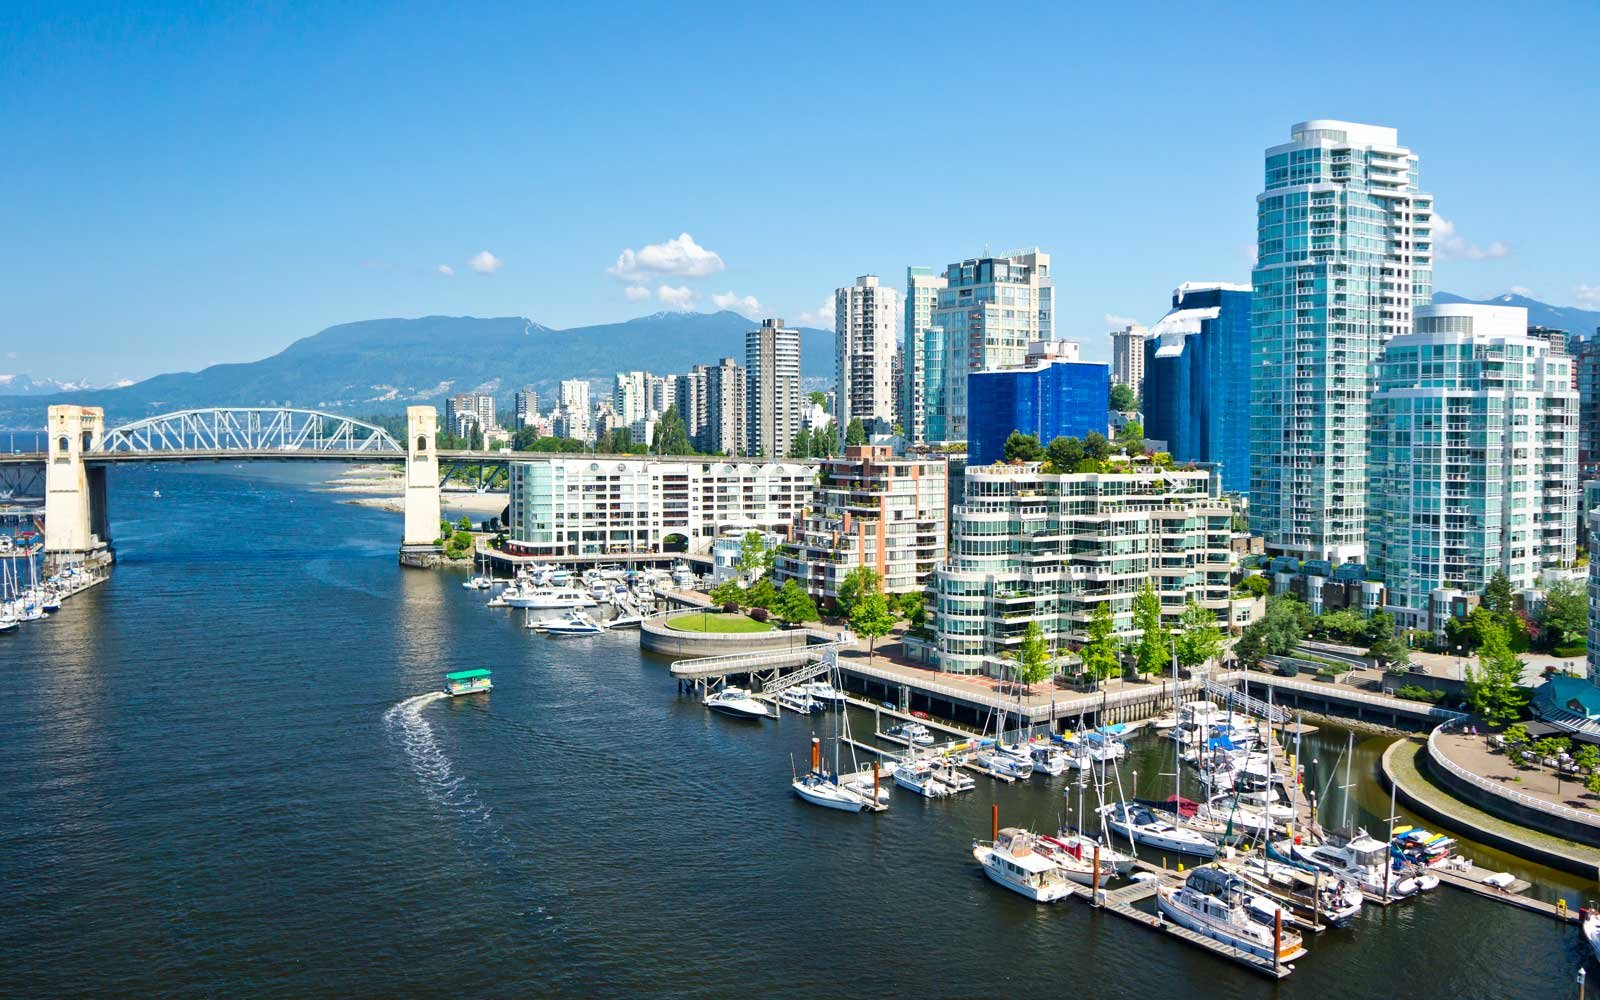 Vancouver, Canada skyline on a sunny day